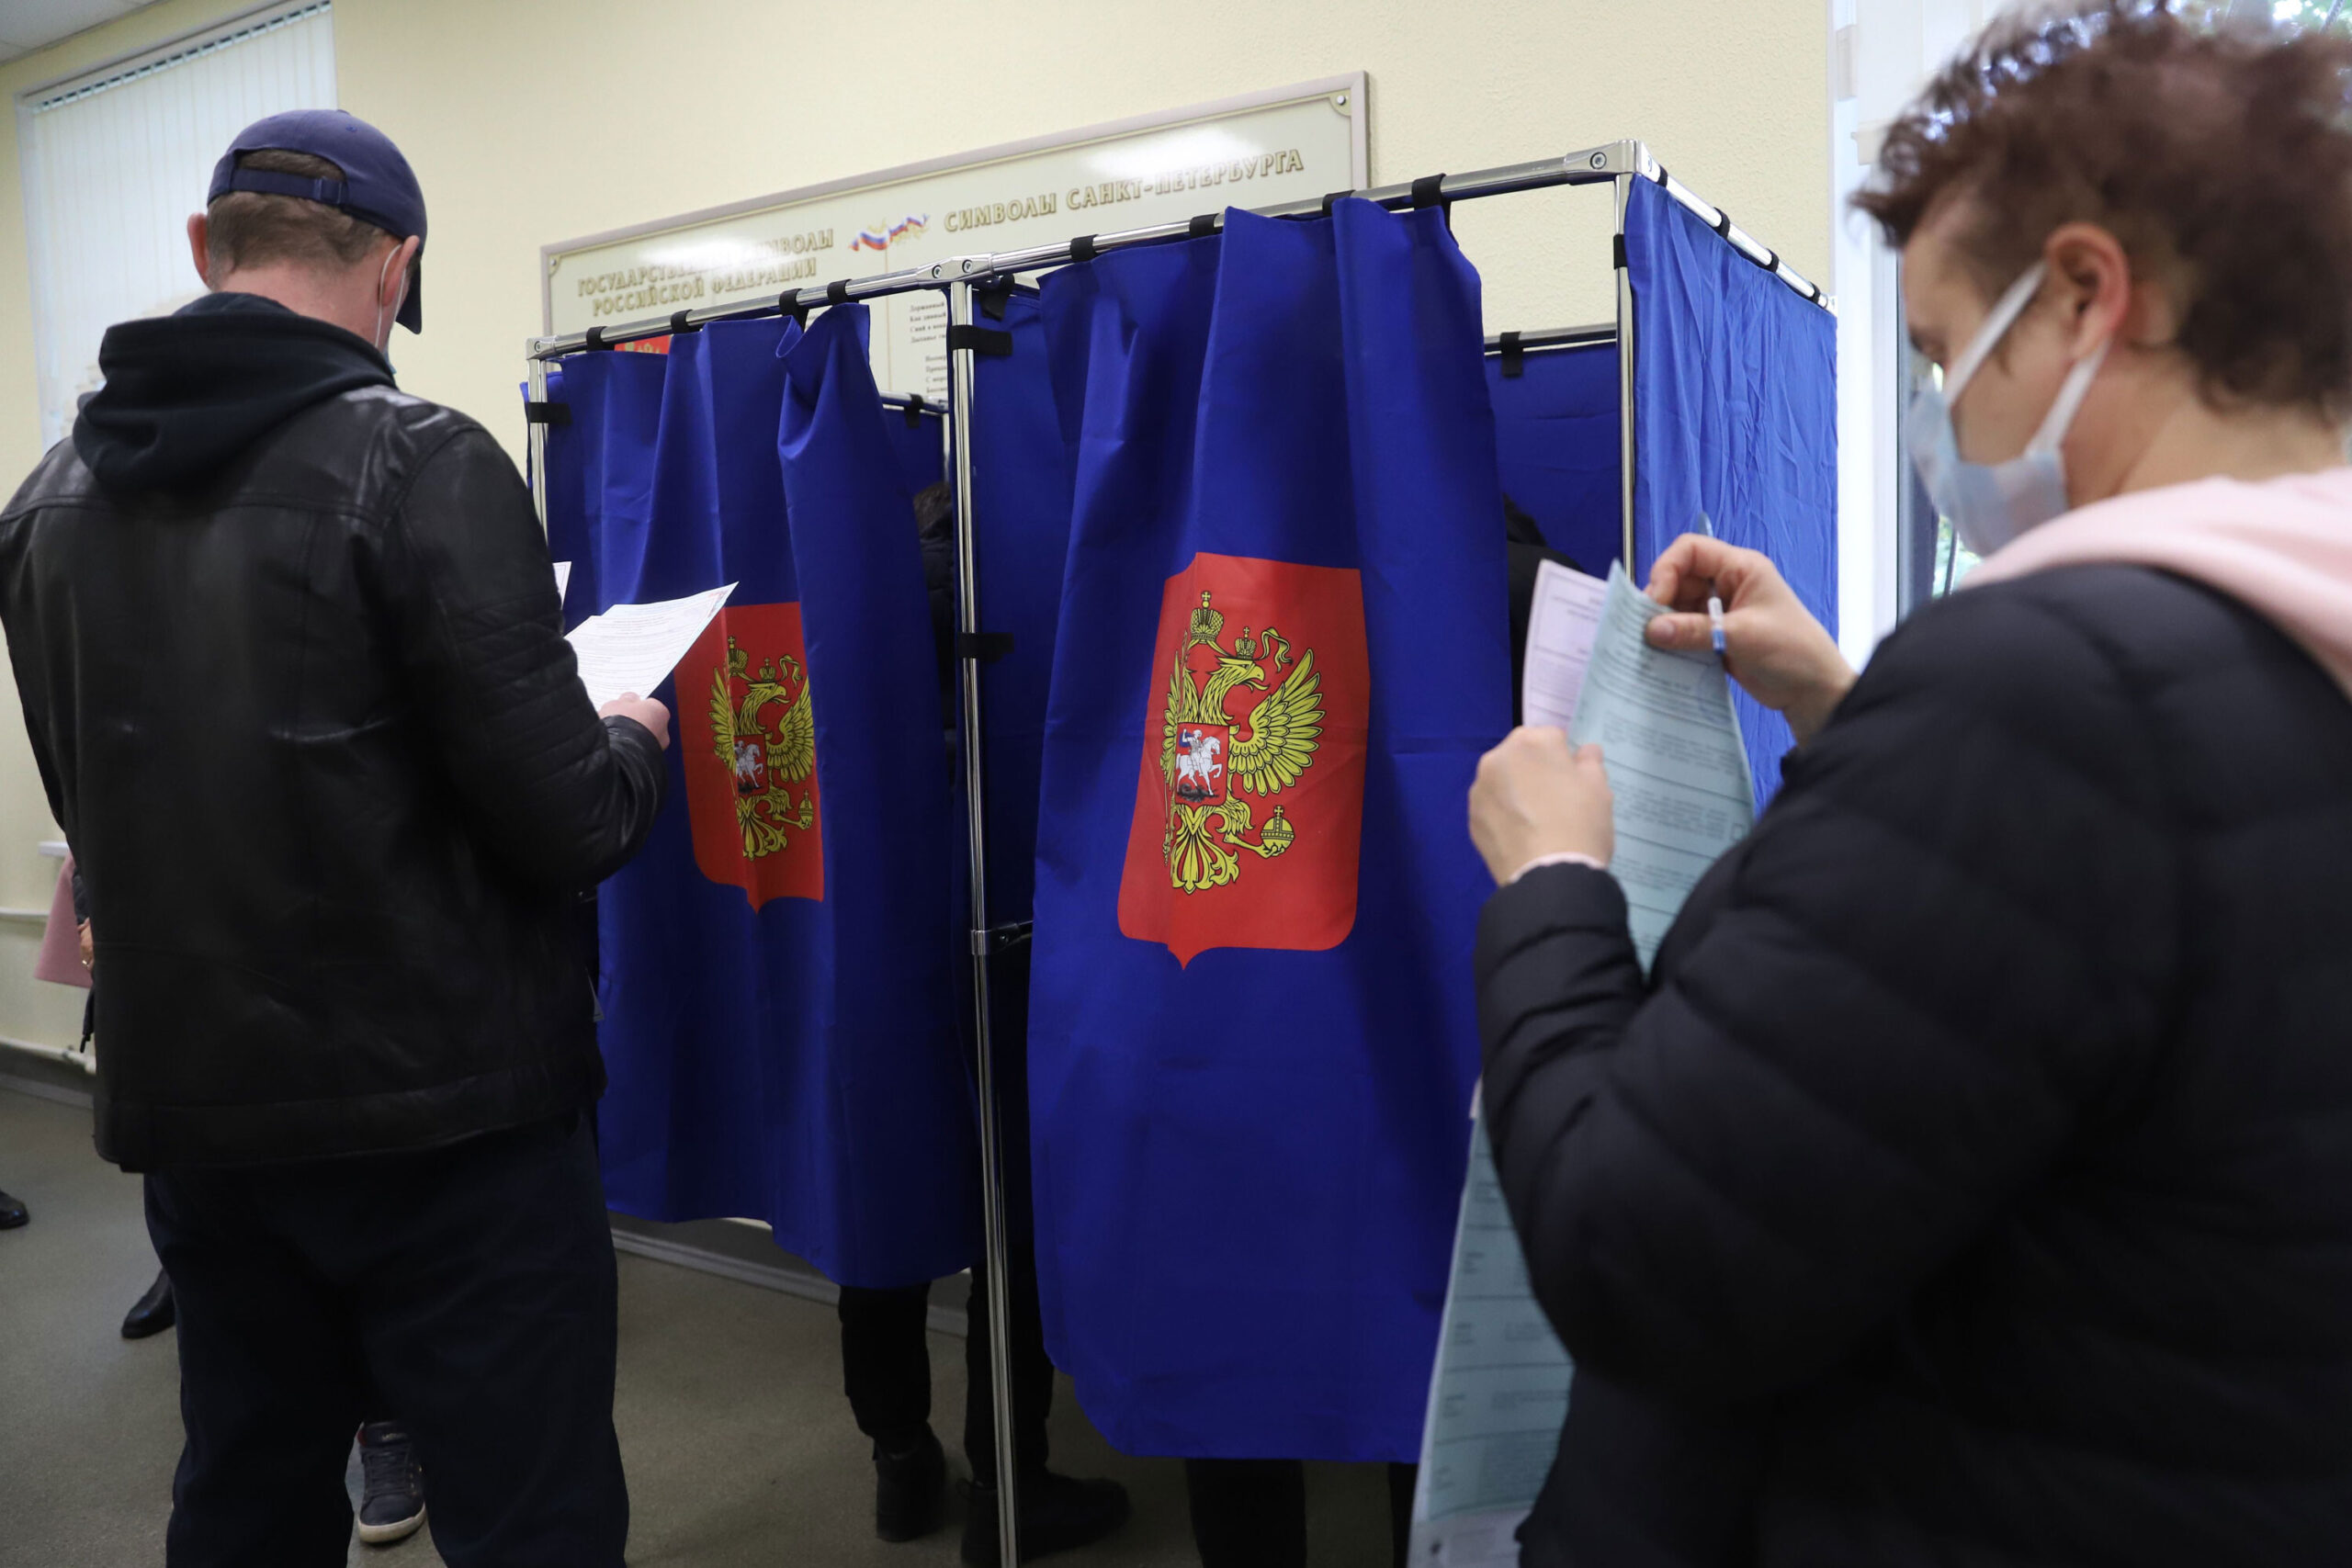 <i>Sergei Mikhailichenko/SOPA Image/Shutterstock</i><br/>People vote during the last day of the three-day parliamentary and local elections in Russia.